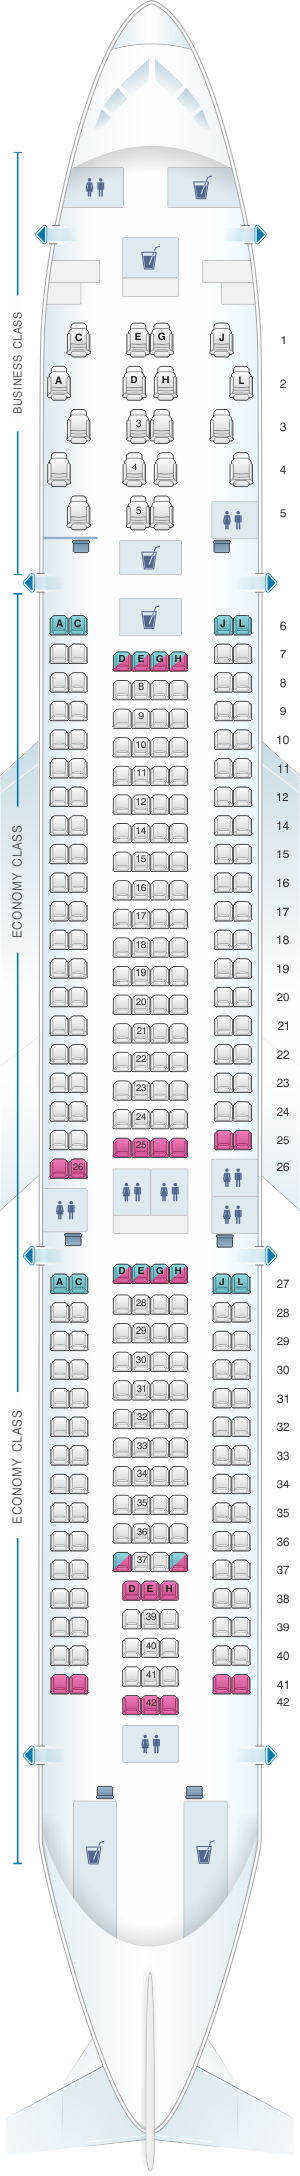 Seat map for Iberia Airbus A330 200